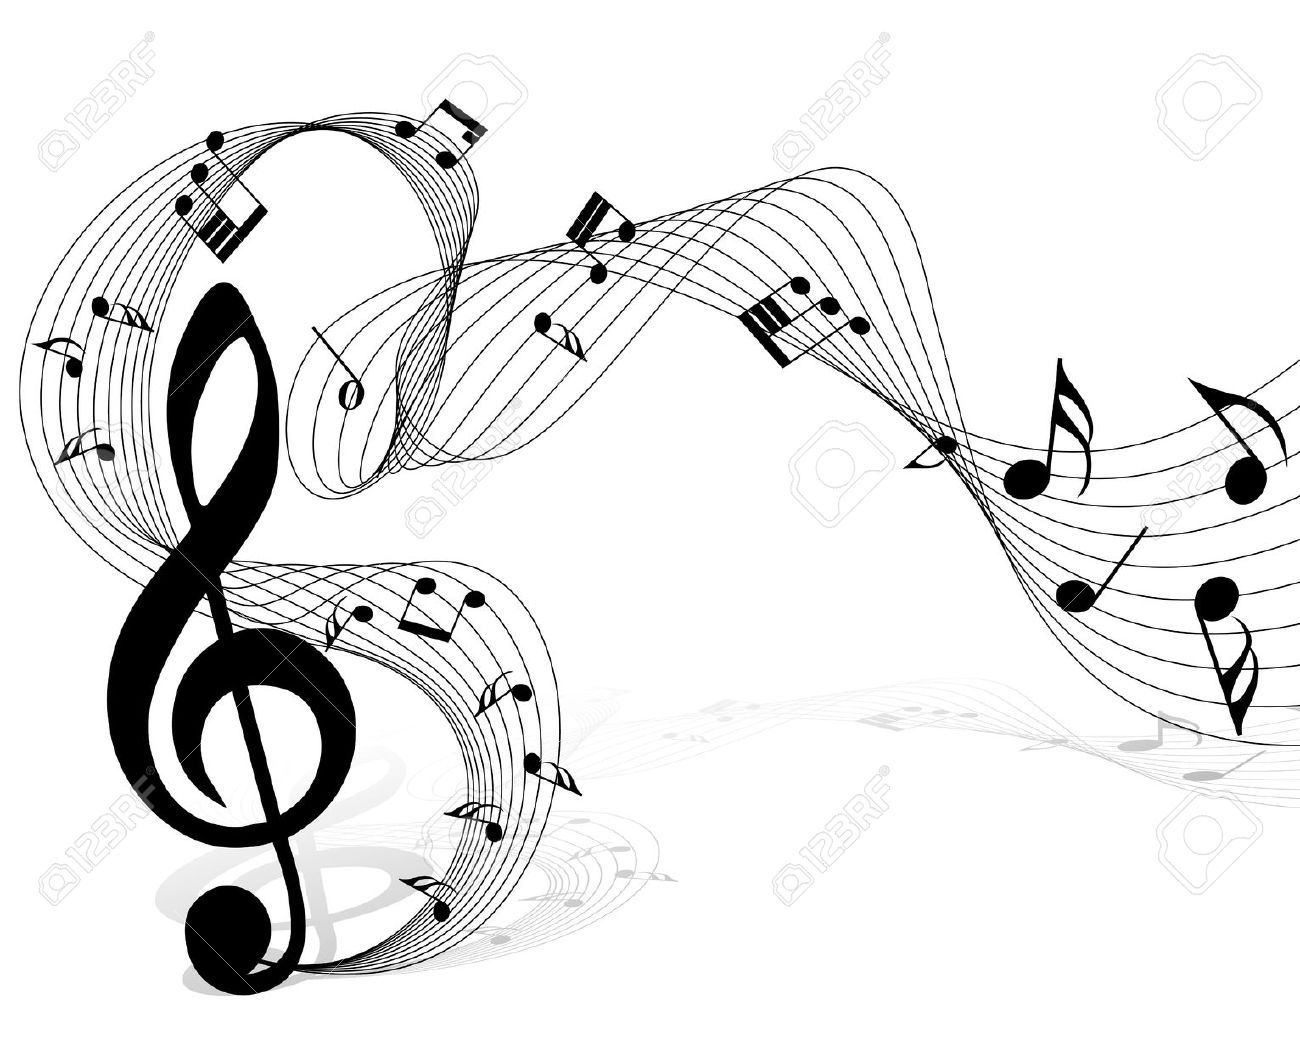 incontriamoci tra le note 1 scuola miari belluno Jazz Notes Clip Art Jazz Trumpet Clip Art